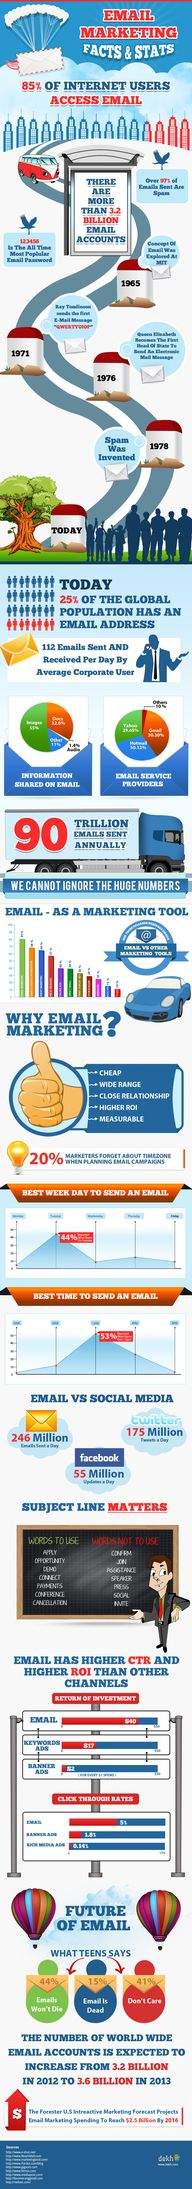 #EmailMarketing Fact